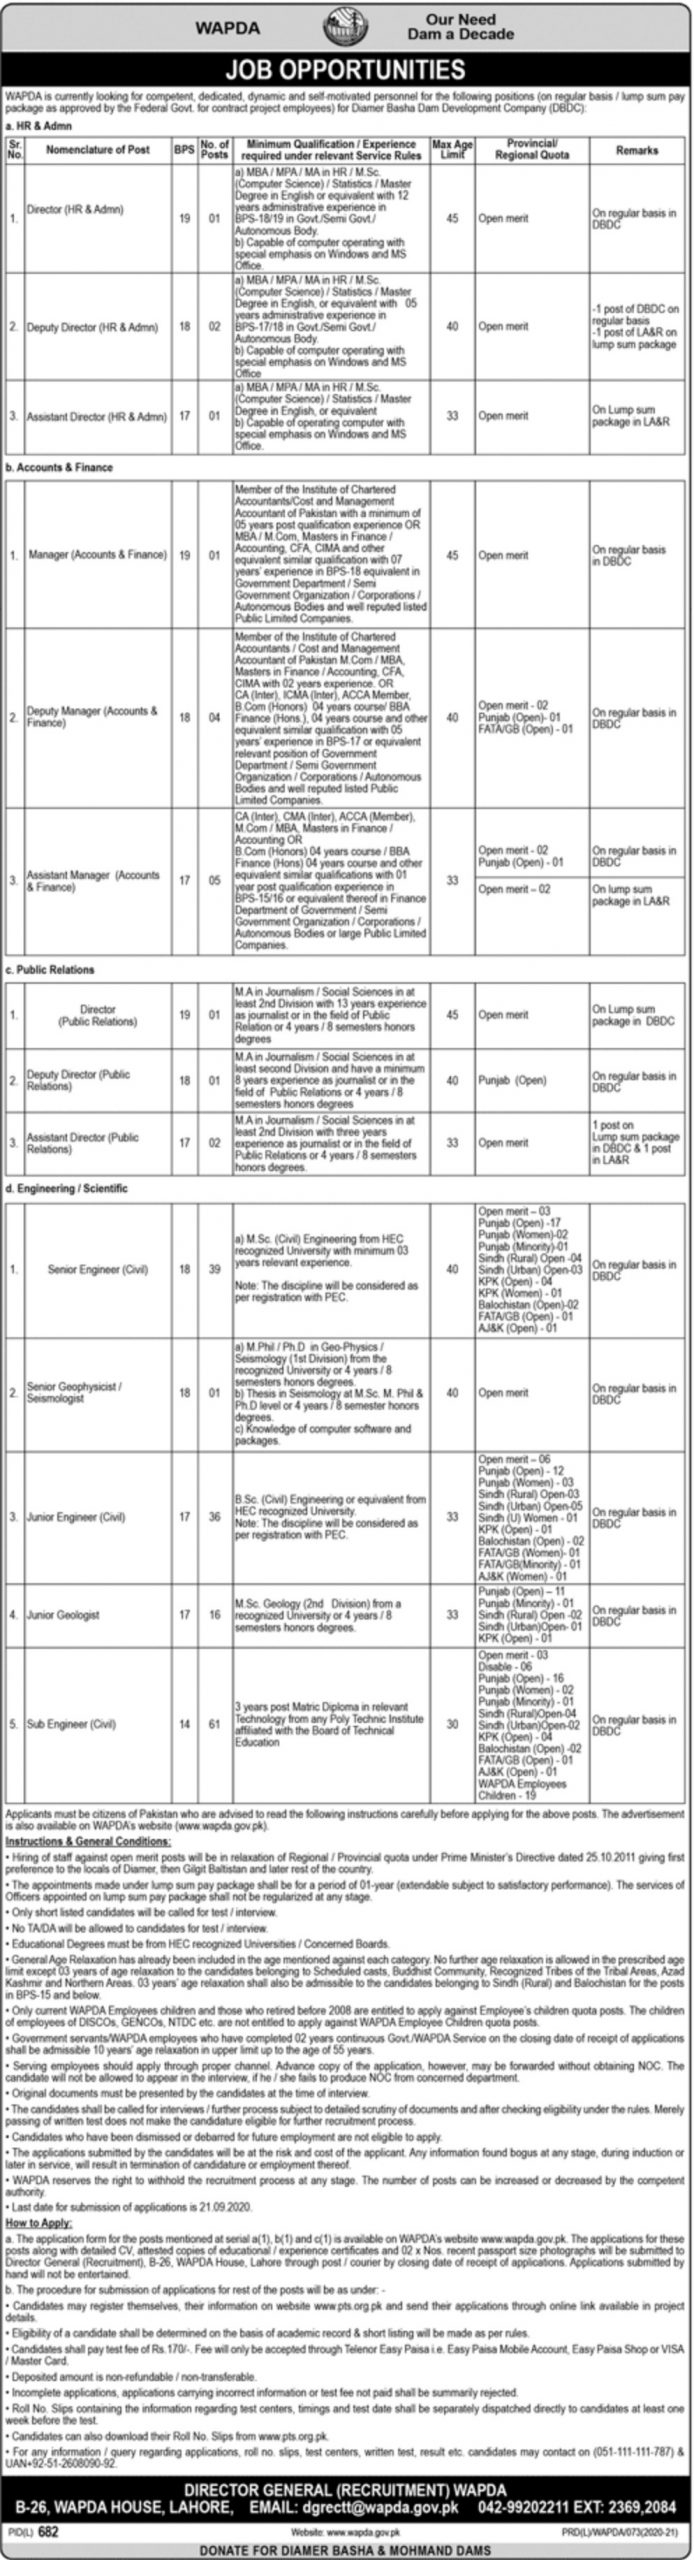 Wapda Jobs September 2020 Apply through PTS